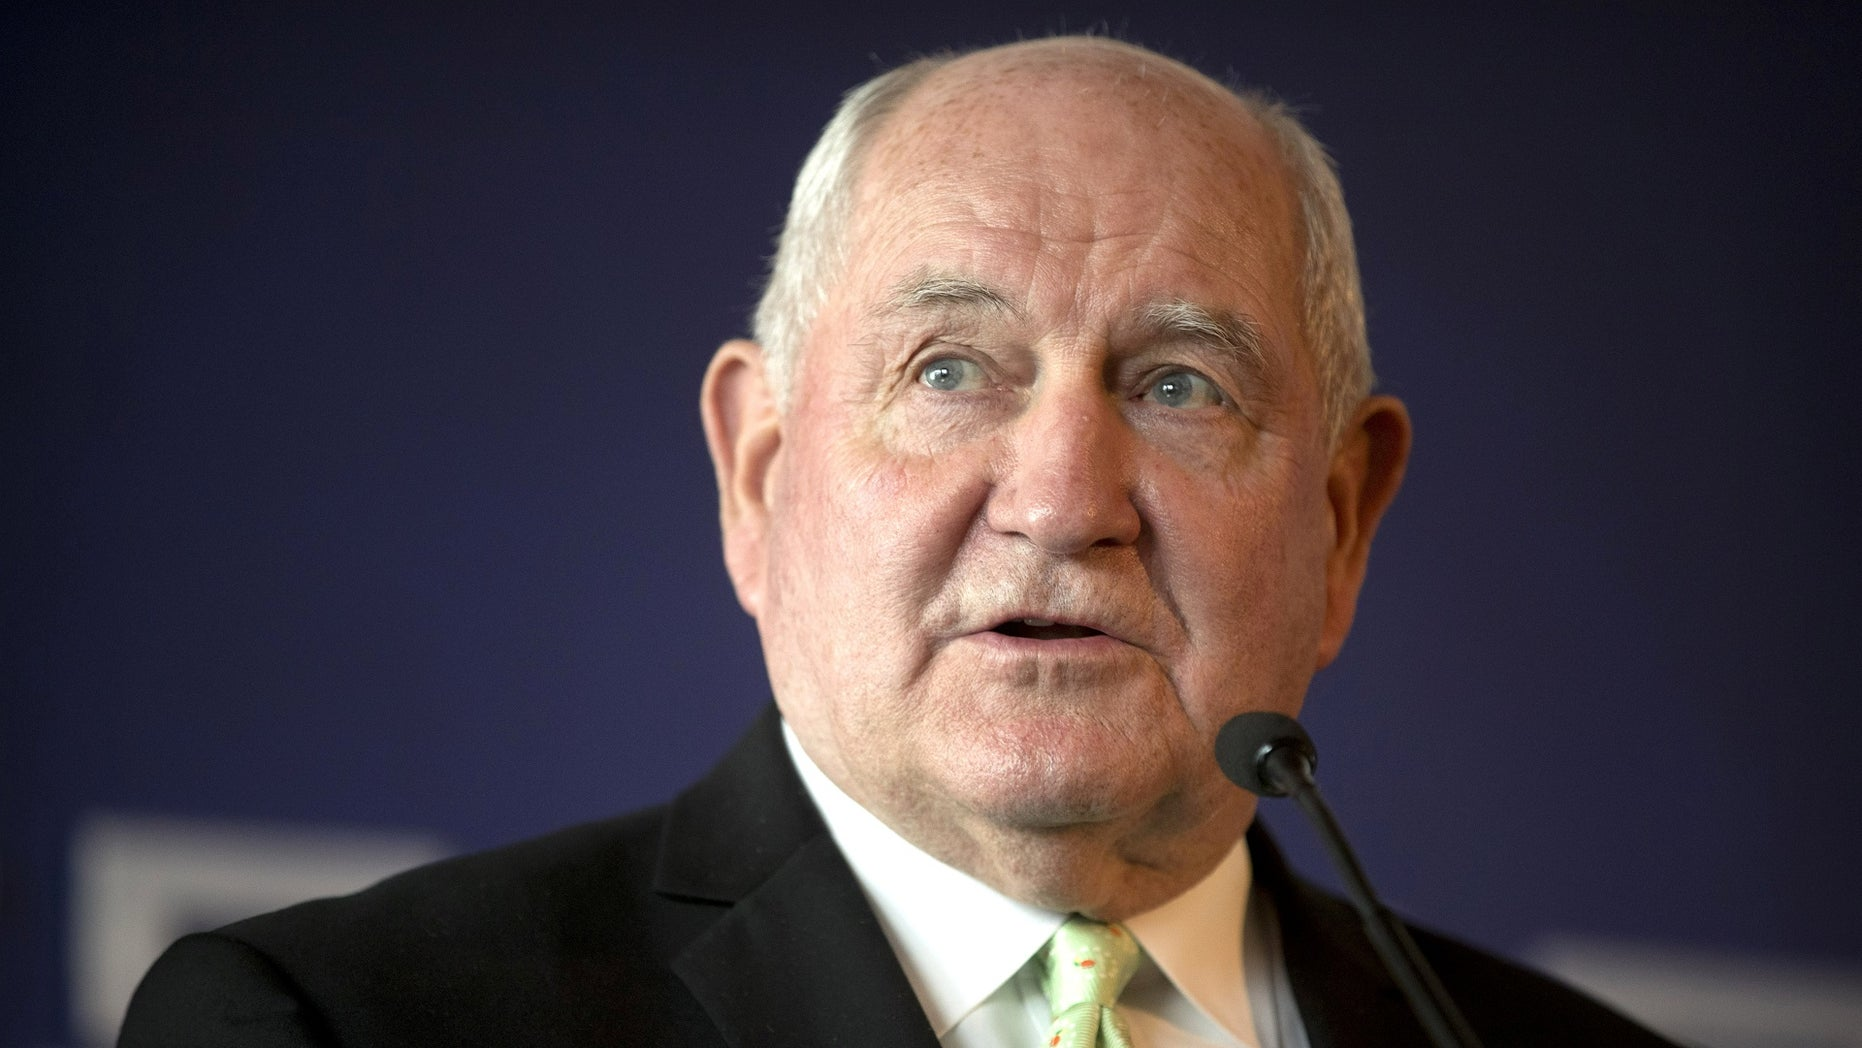 Agriculture Secretary Sonny Perdue was named as the designated survivor for President Trump's first State of the Union address.